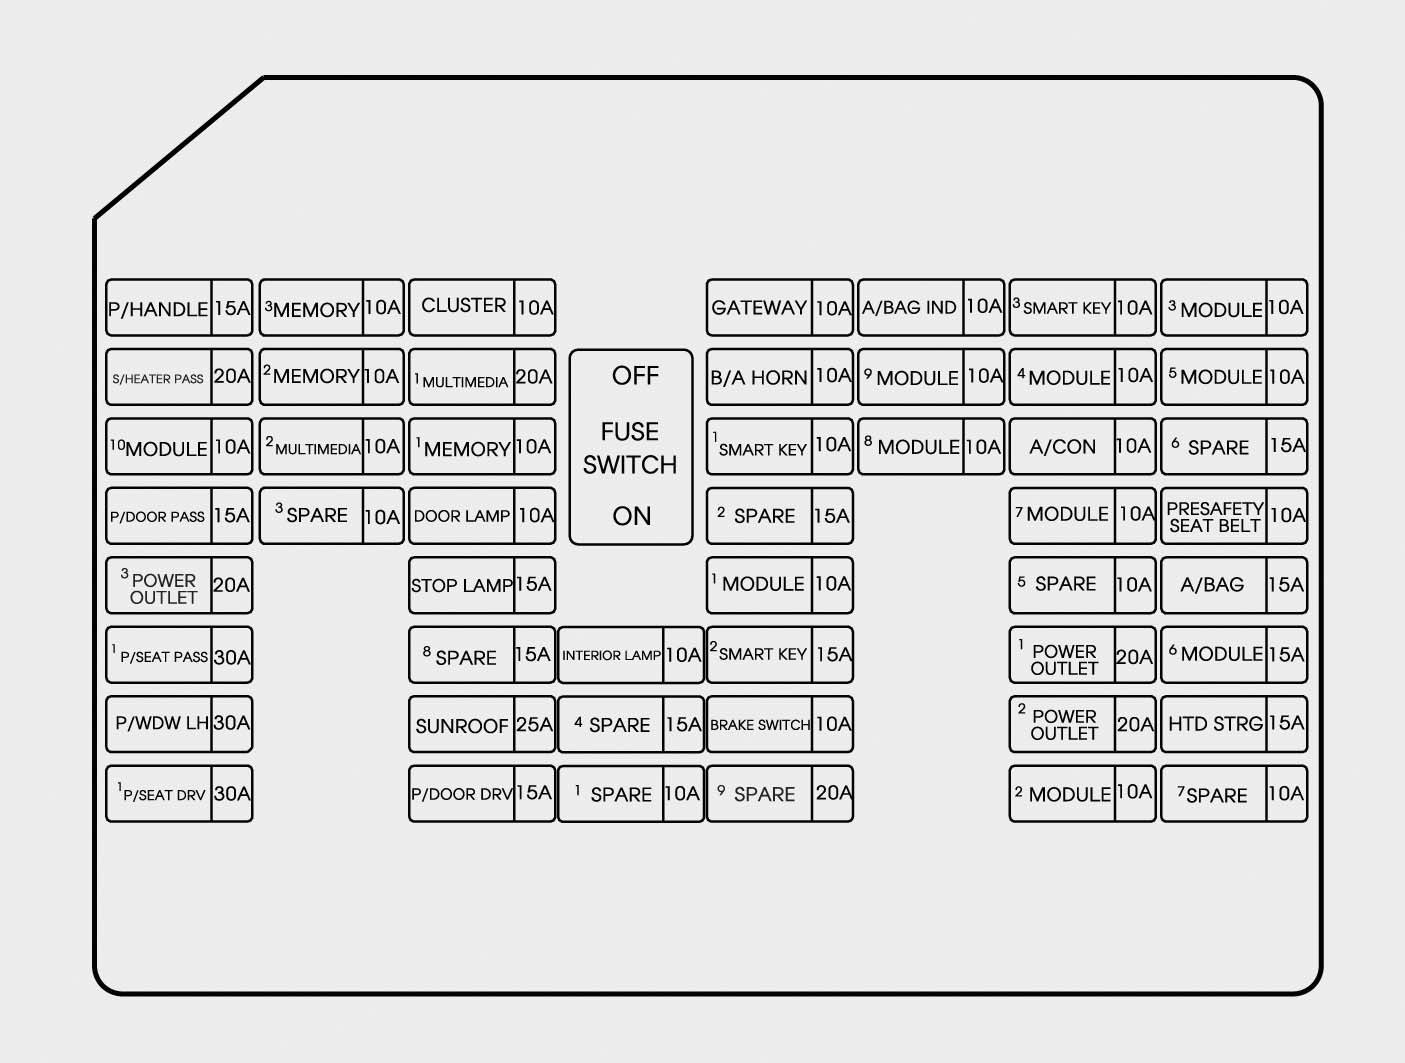 2011 Hyundai Sonata Fuse Panel Diagram 2006 Hyundai Fuse Box Diagram 2011  Hyundai Genesis Fuse Box Diagram